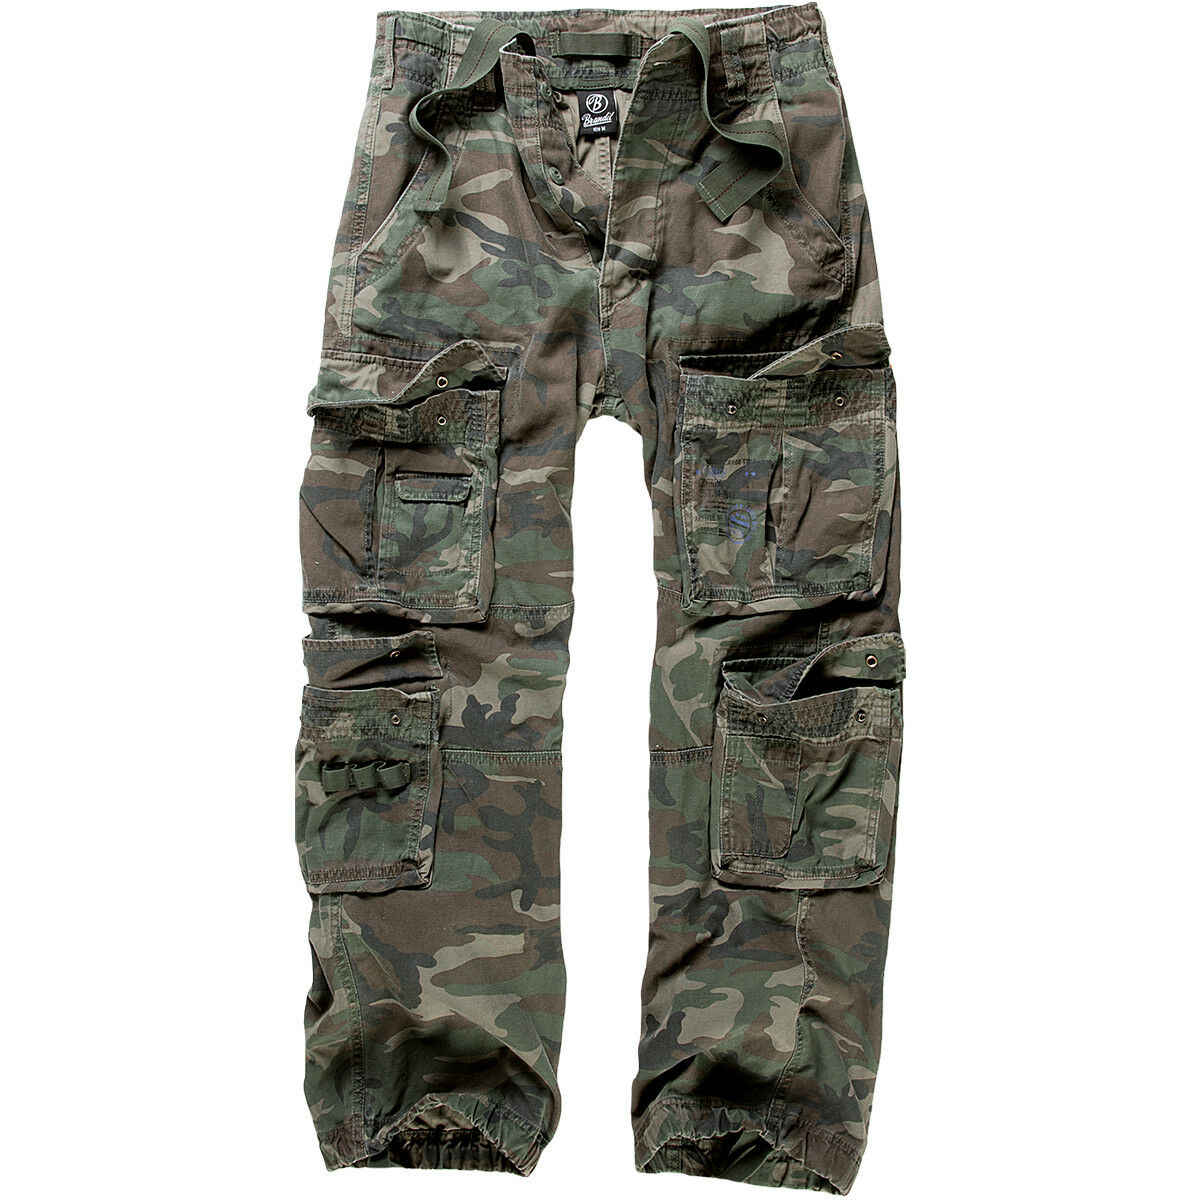 BRANDIT MENS PURE VINTAGE HIKING TROUSERS PAINTBALL HUNTING PANTS WOODLAND CAMO